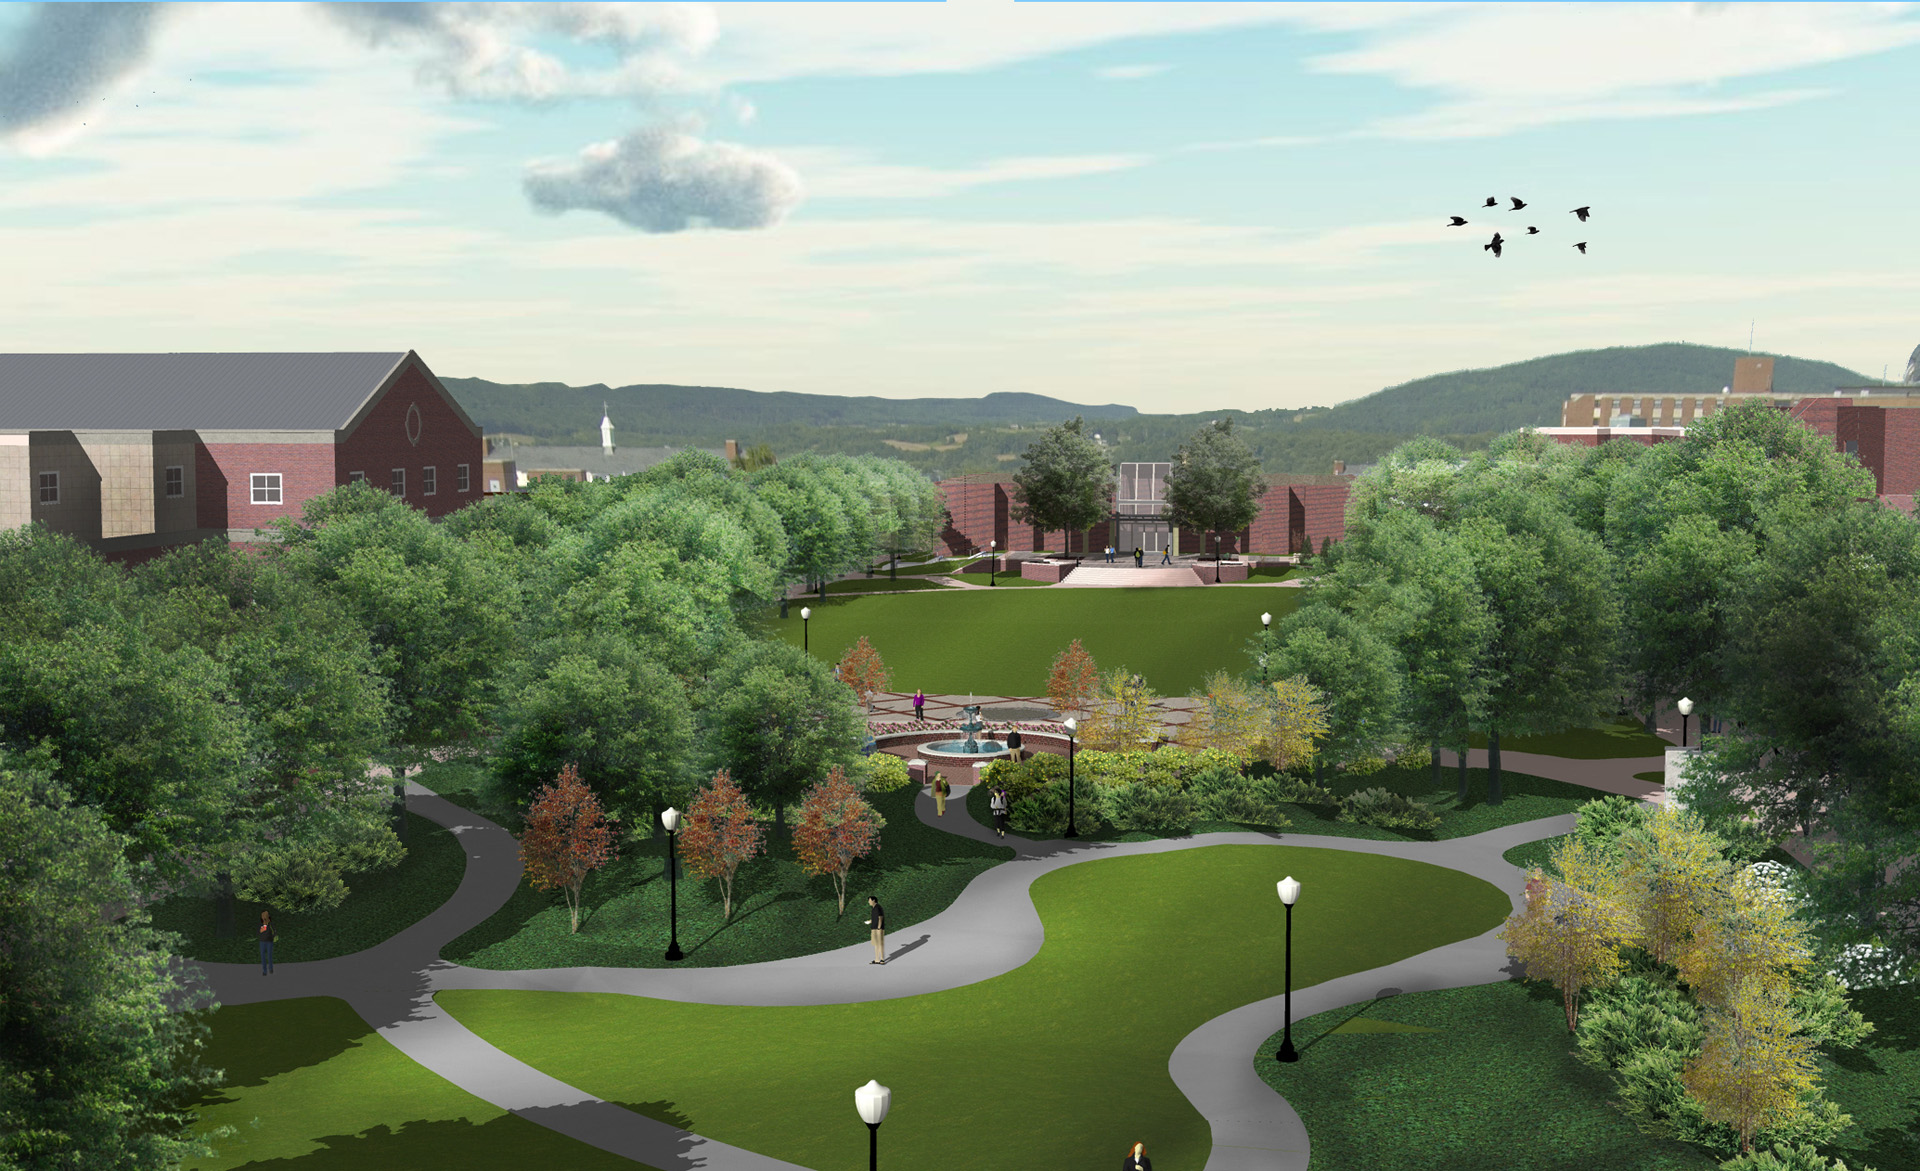 Bloomsburg University Aerial Rendering